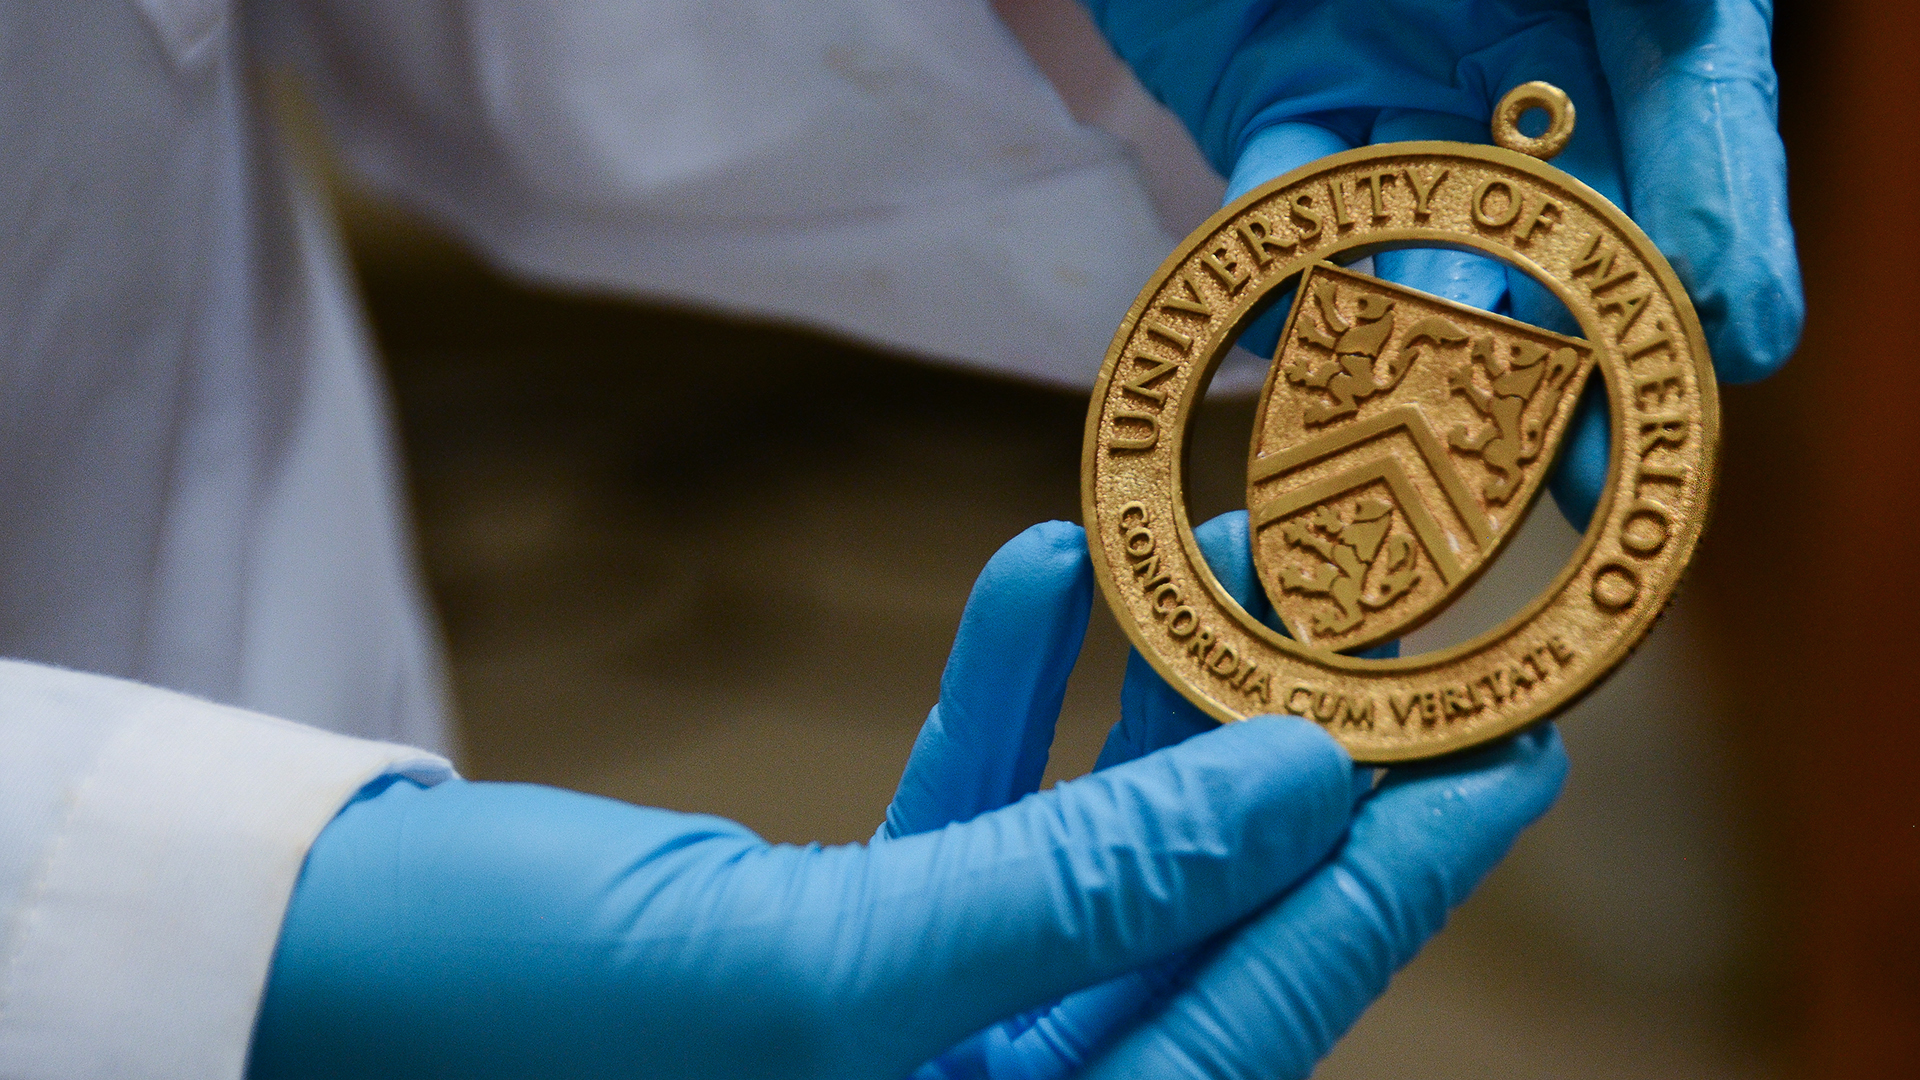 New Alumni Gold Medal